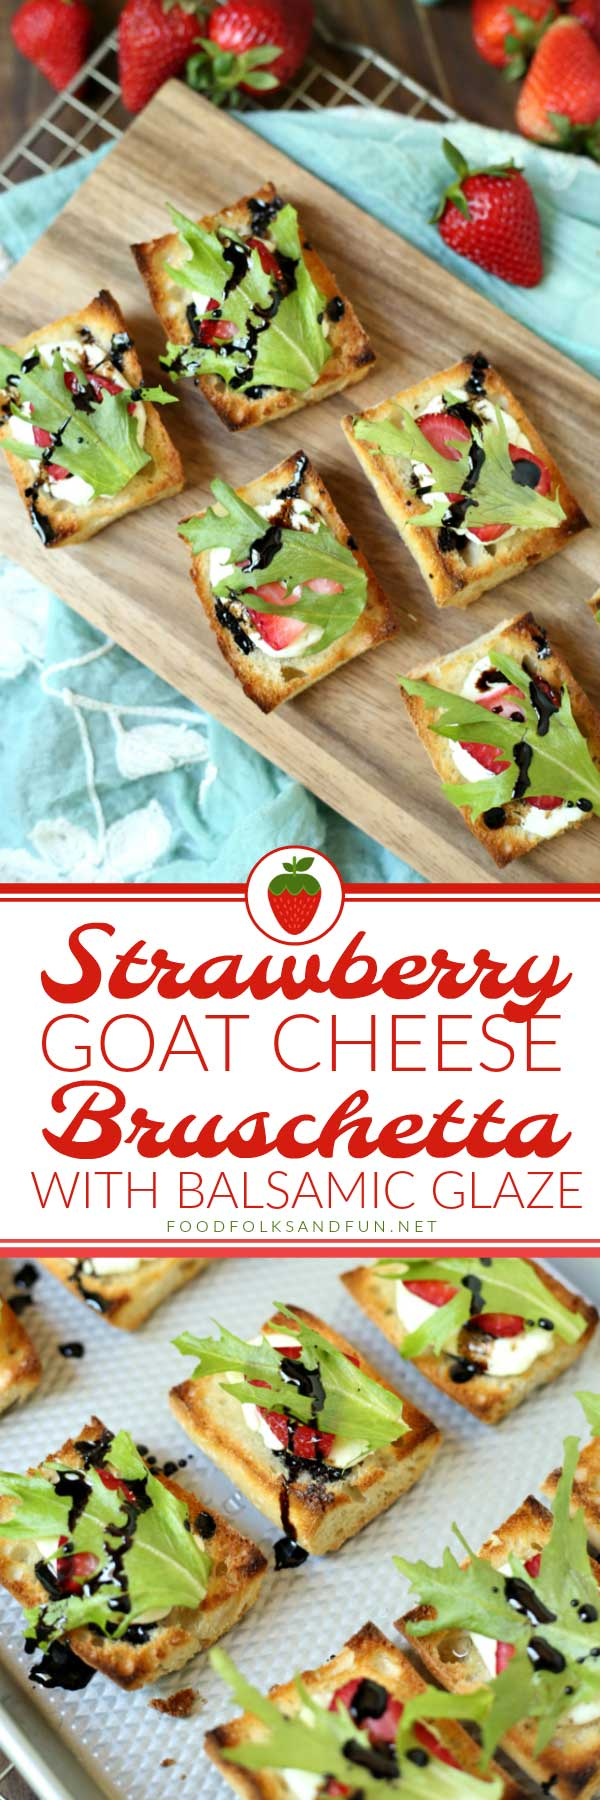 This Strawberry Goat Cheese Bruschetta with Balsamic Glaze is the appetizer of summer! It's fresh, bright flavors are just the thing for a summer party, barbecue, or even light dinner. via @foodfolksandfun